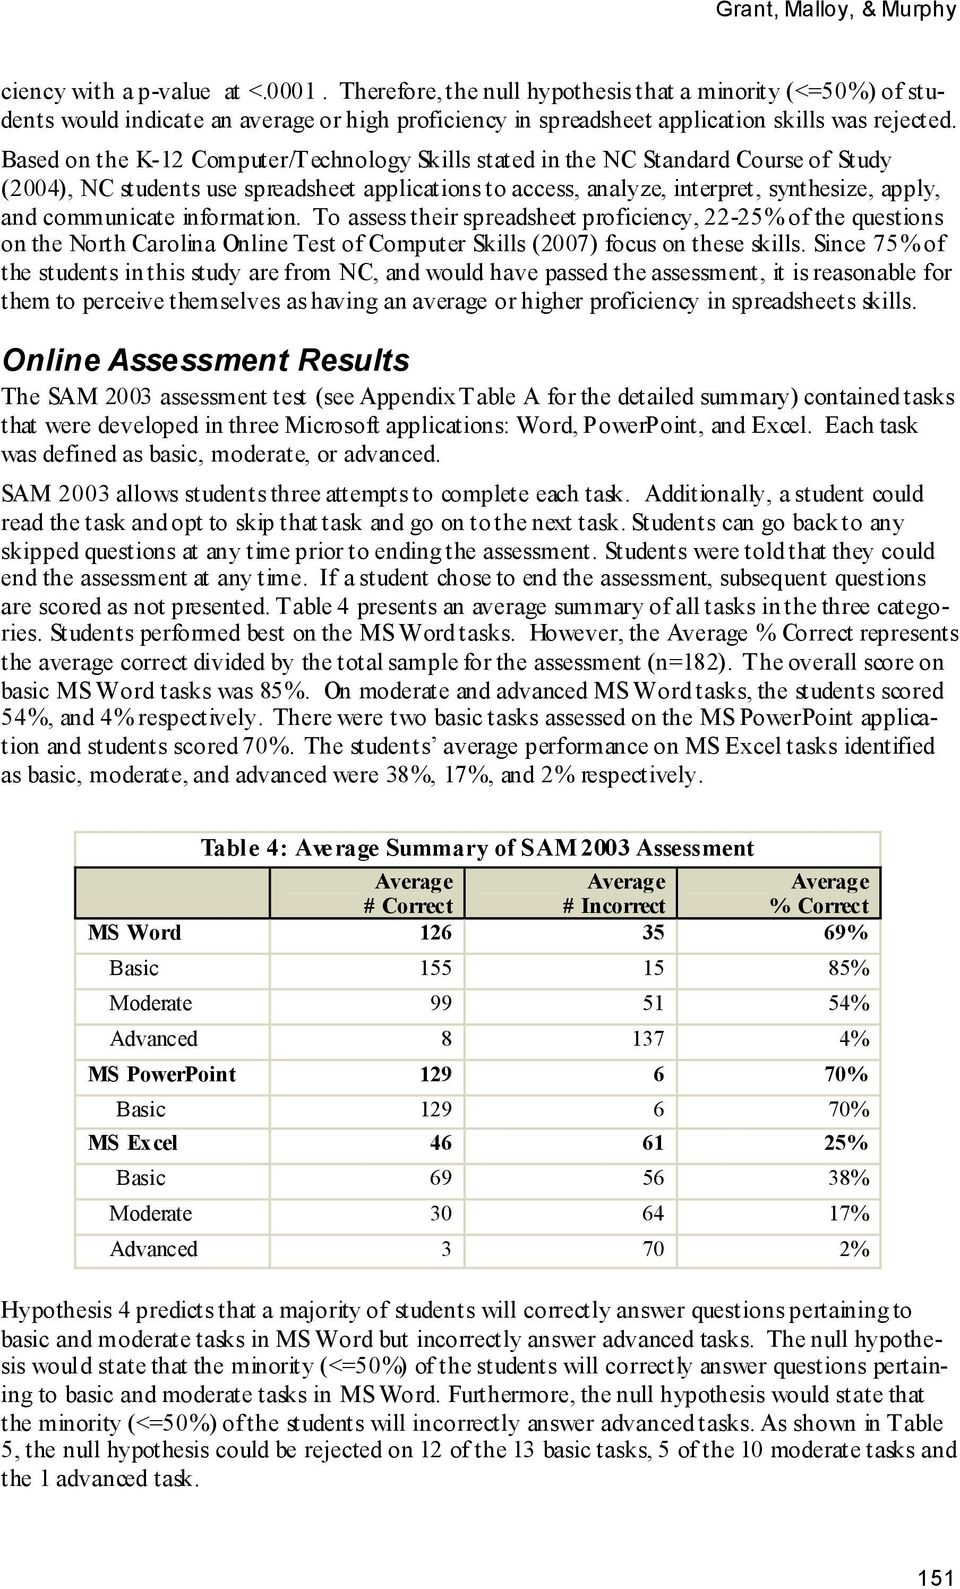 Based on the K-12 Computer/Technology Skills stated in the NC Standard Course of Study (2004), NC students use spreadsheet applications to access, analyze, interpret, synthesize, apply, and